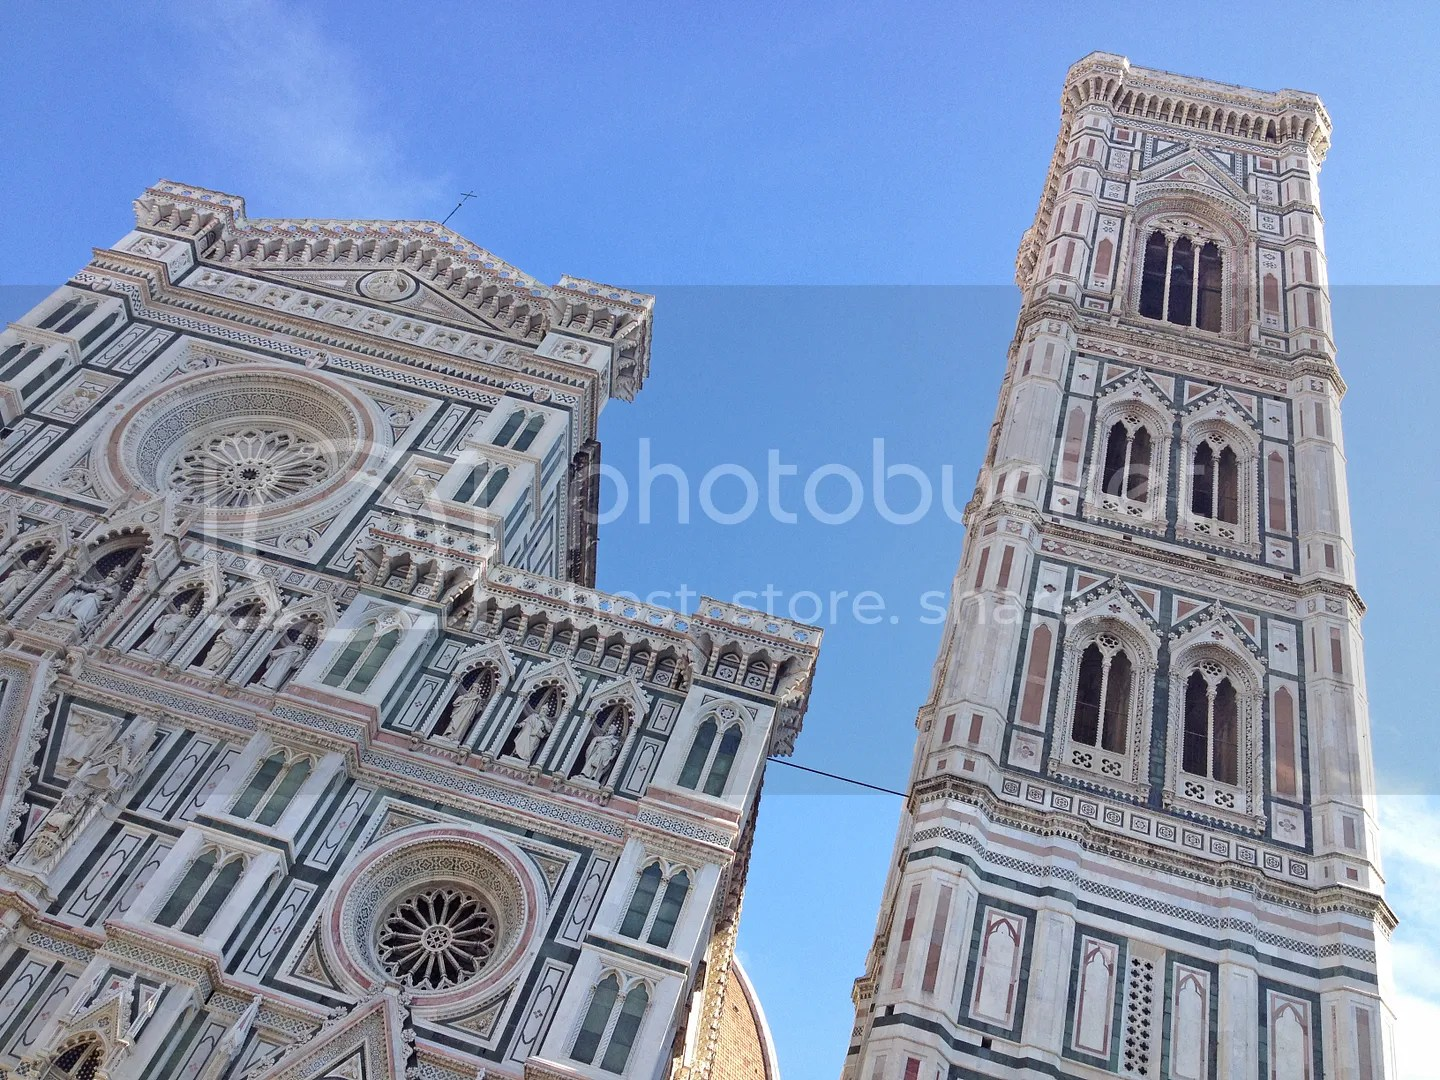 photo Florence-Campanile_zpsual1n3dh.jpg